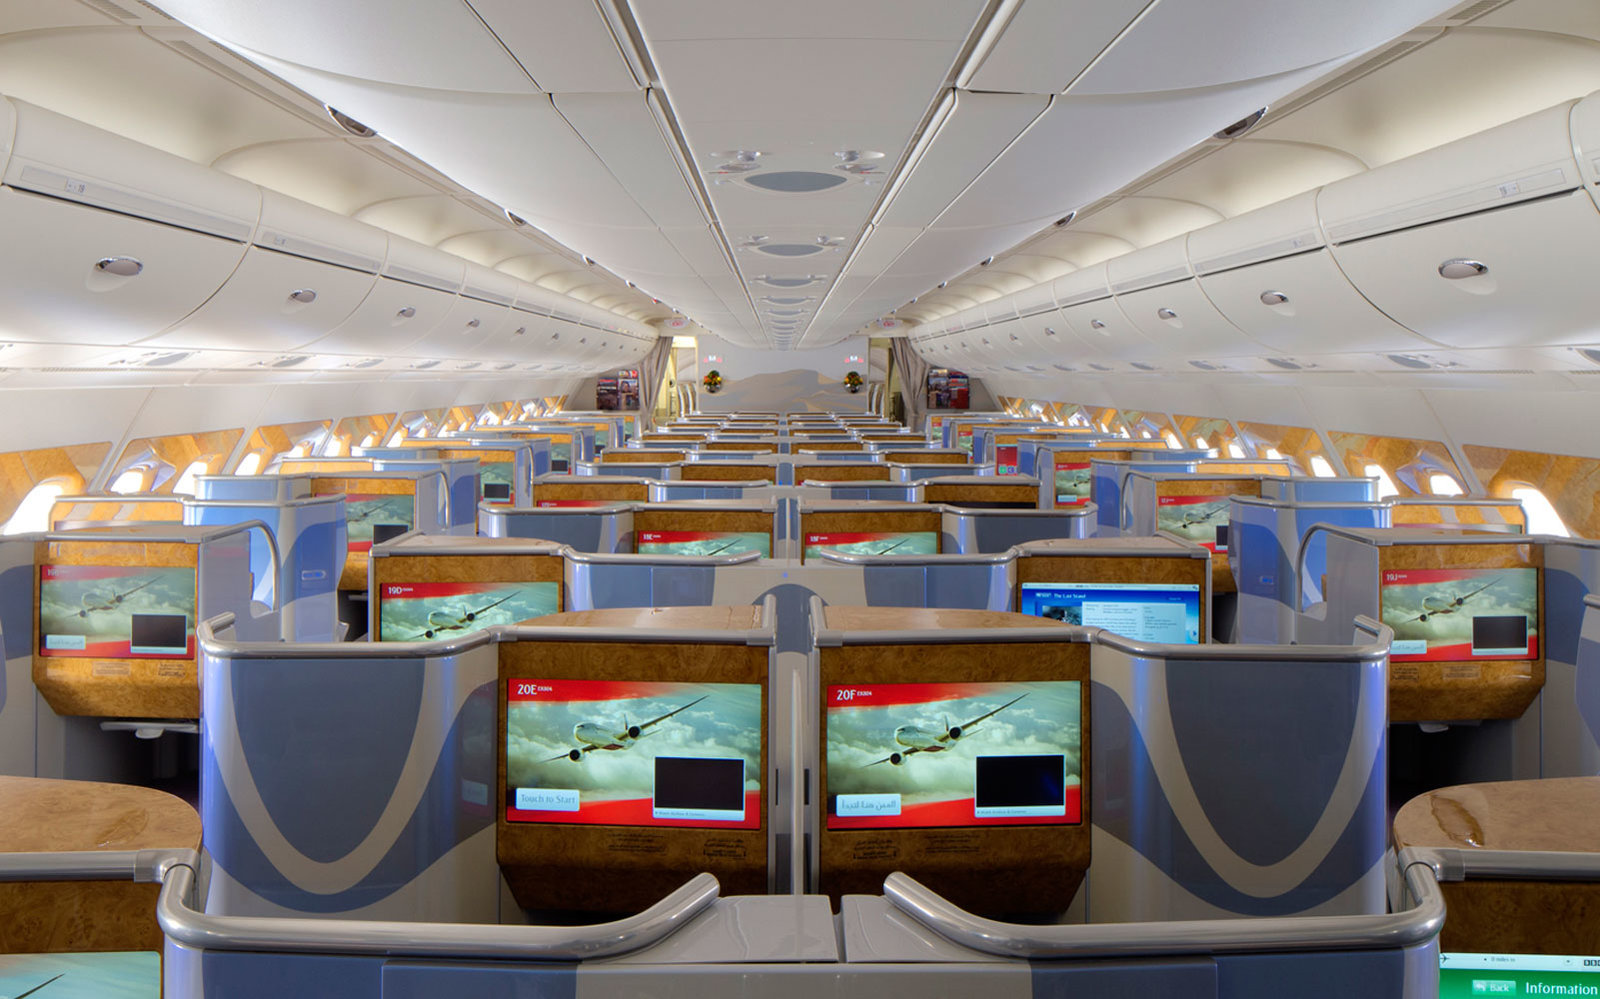 Inside The Airbus A380 The Biggest Passenger Plane In The